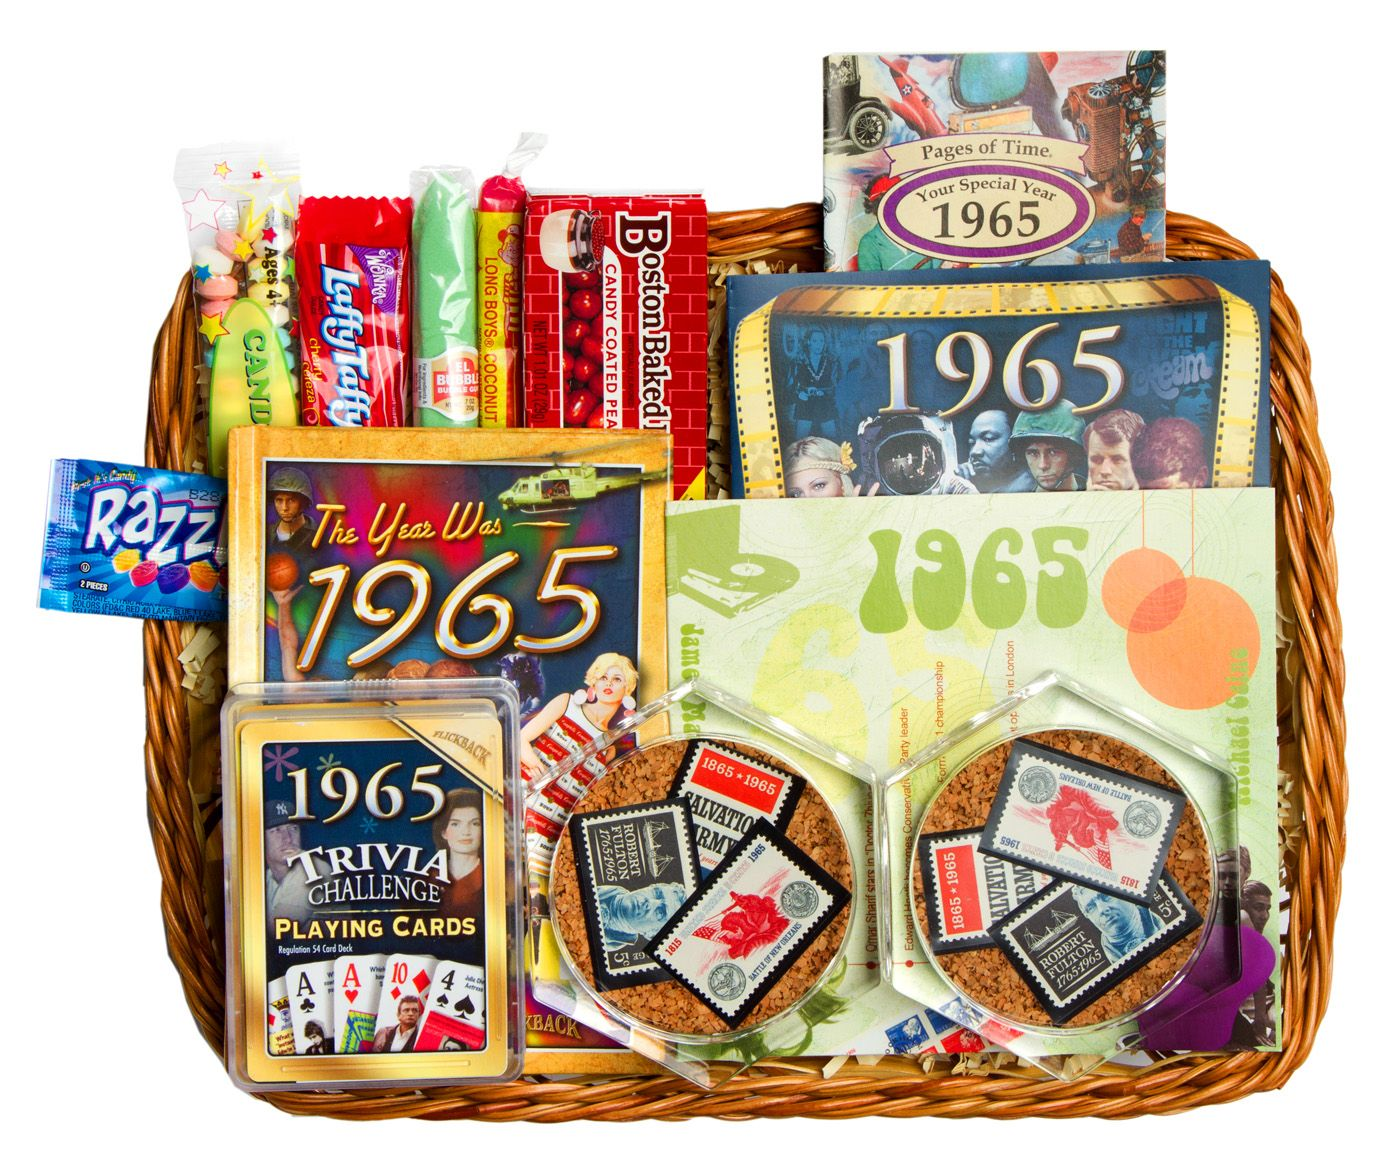 60th Anniversary Or Birthday Gift Basket For 1955